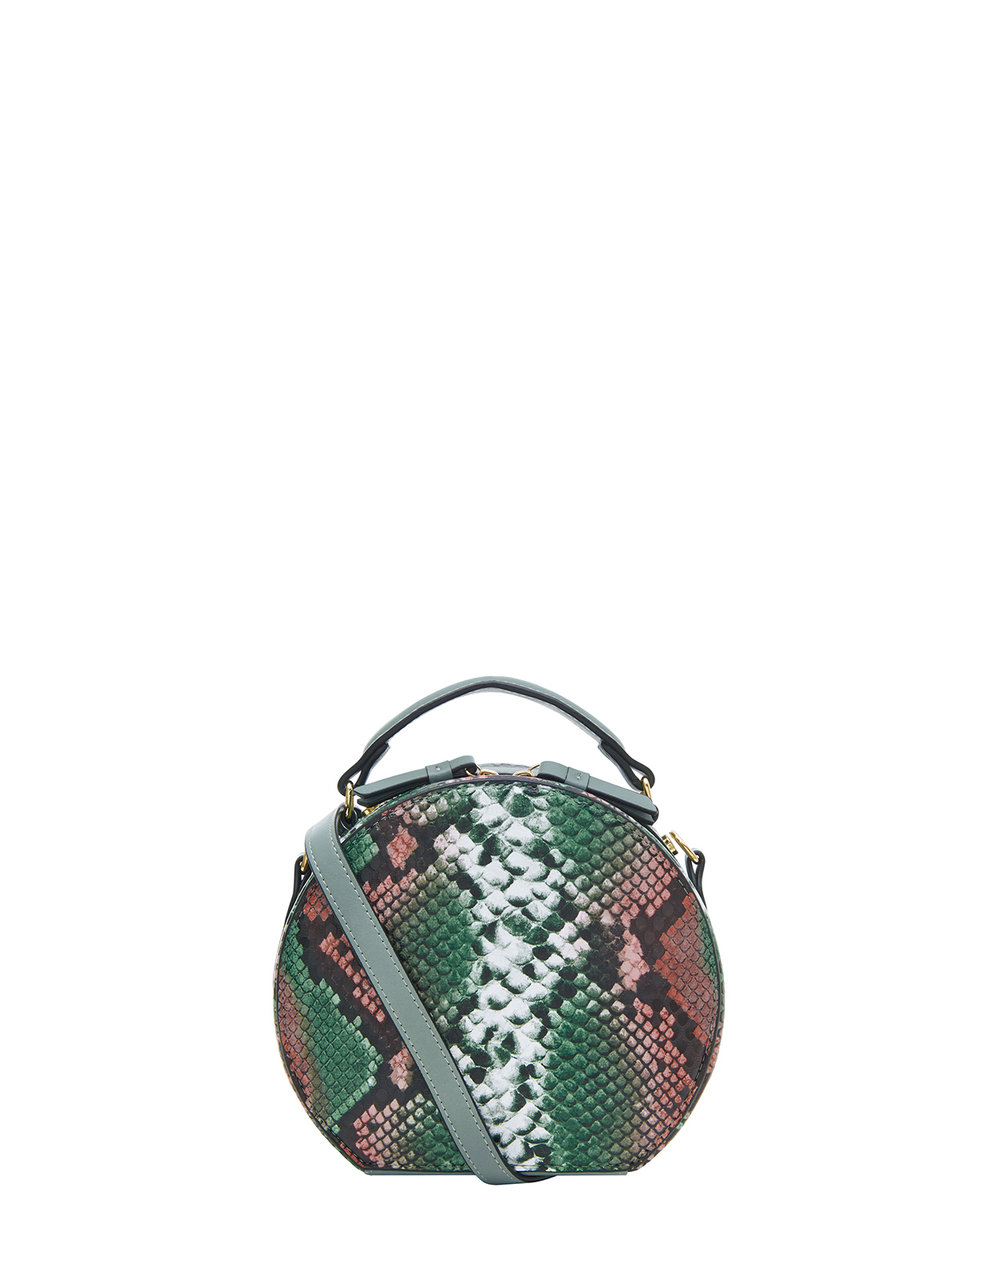 circular cross body bags     CIRCULAR CROSS BODY BAGS ARE A GREAT CHANGE TO YOUR USUAL BAGS, pair with NEUTRAL PIECES TO REALLY MAKE A STYLISH statement! THIS NEW STYLE IS REMINISCENT TO vintage HAT BOXES AND LUGGAGES. ROUNDED BAGS ADDS A CUTE LOOK WHILE BIG ENOUGH TO STORE YOUR IPHONE!